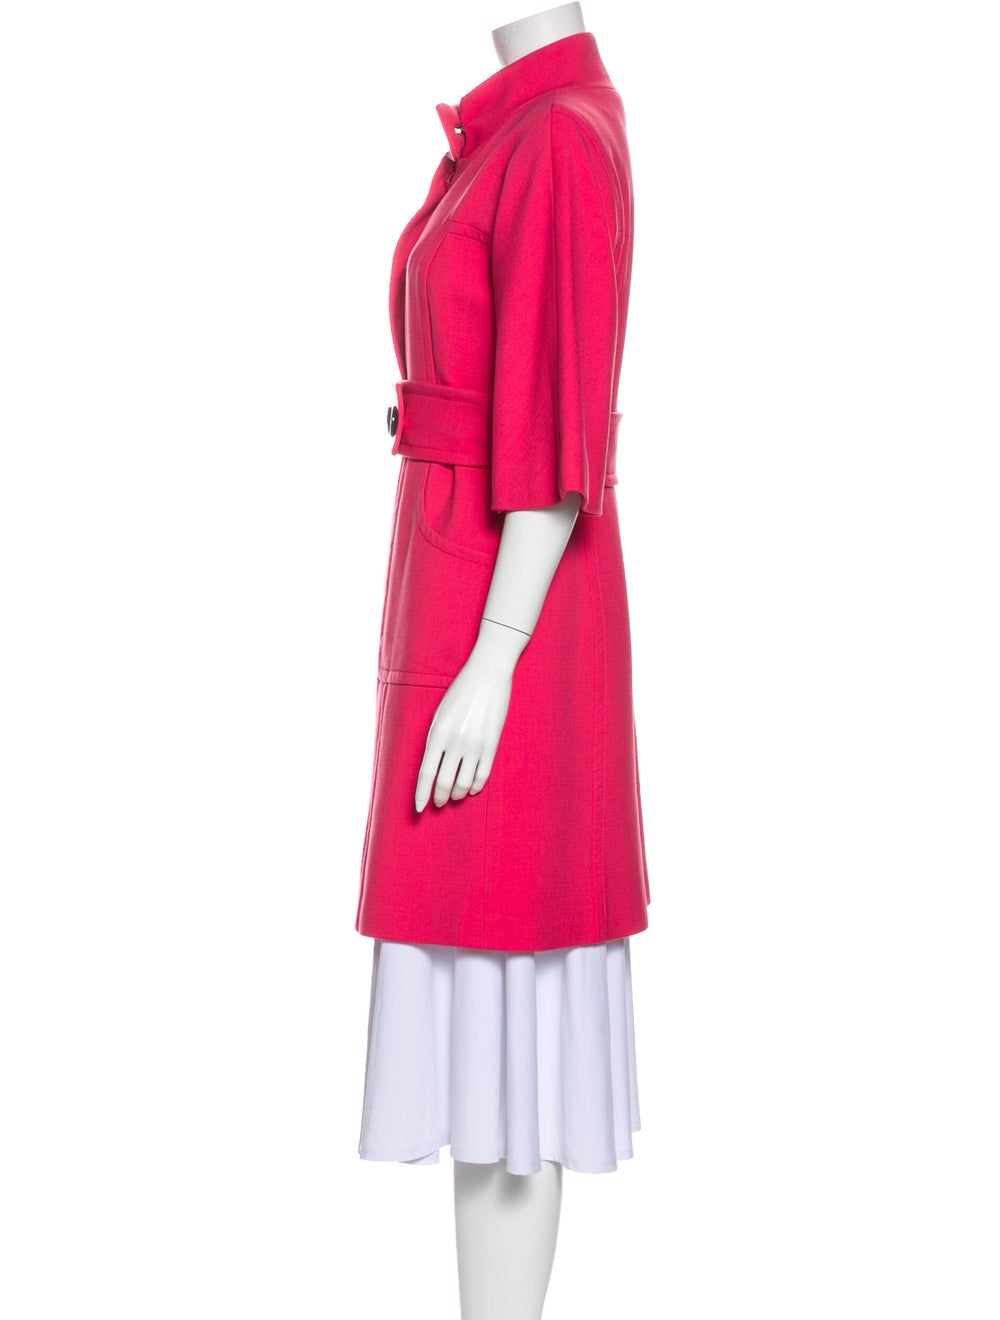 Milly Trench Coat Pink - image 2